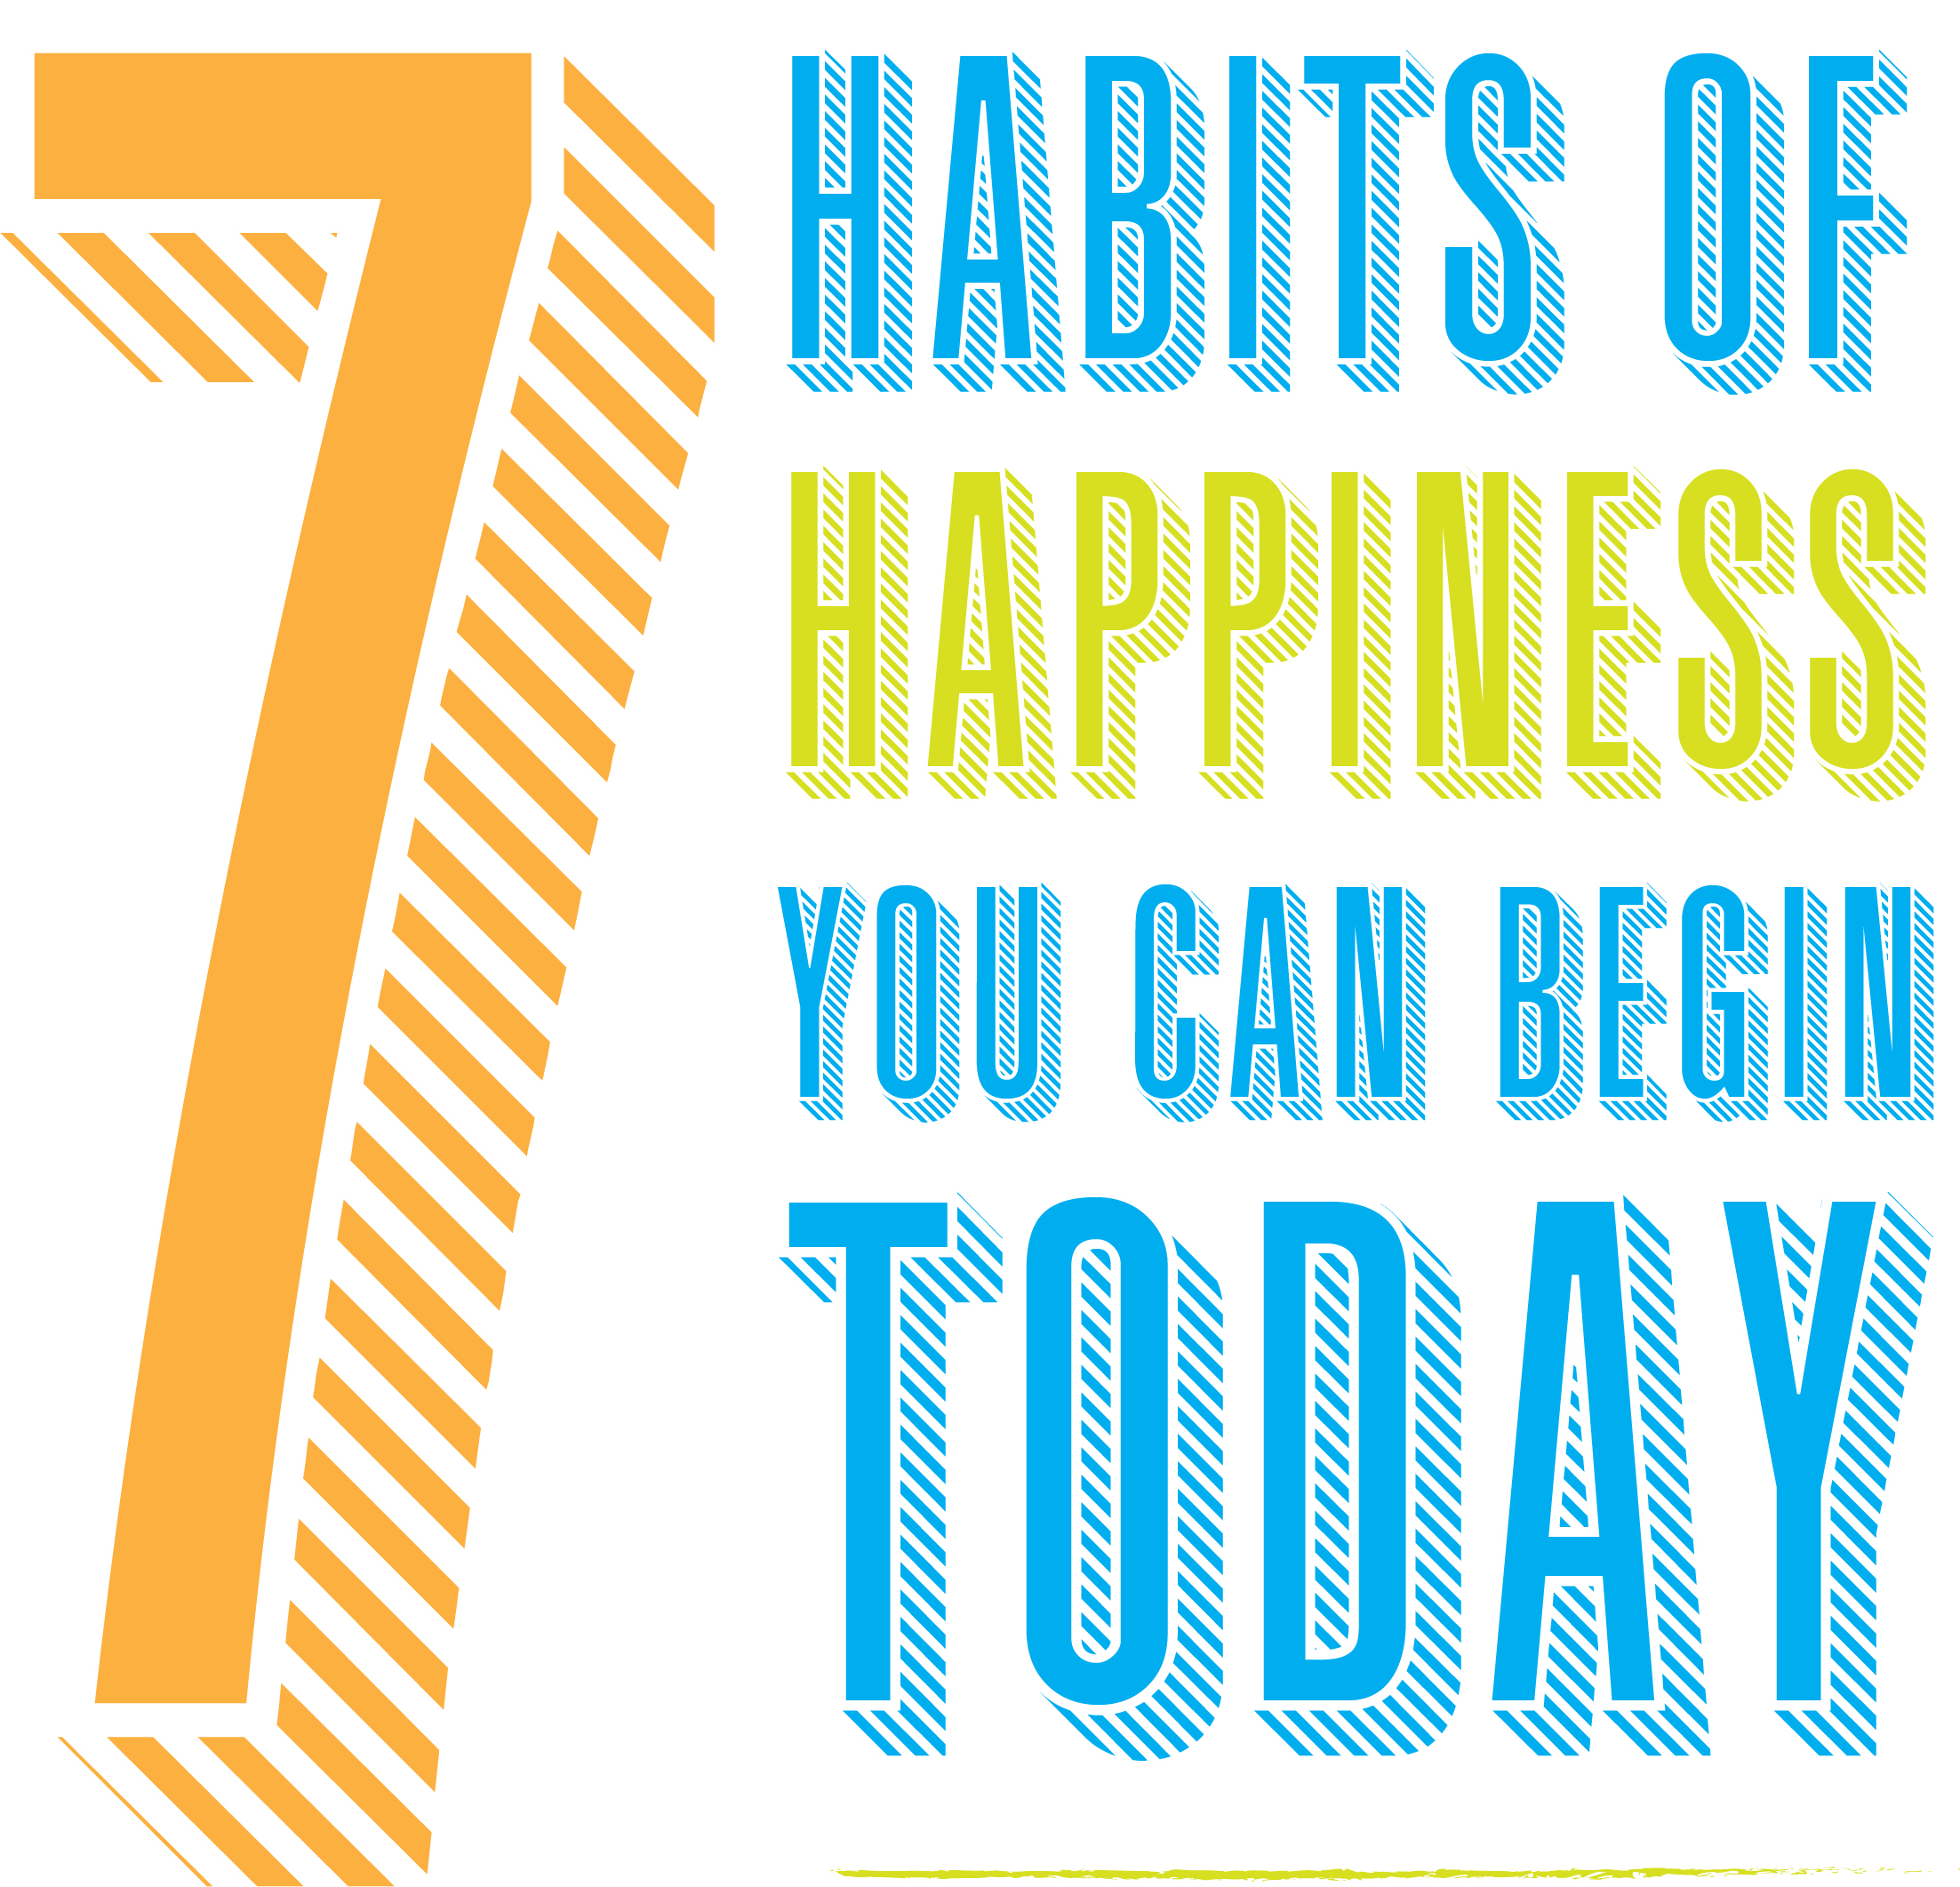 7HabitsOfHappiness_Title.jpg